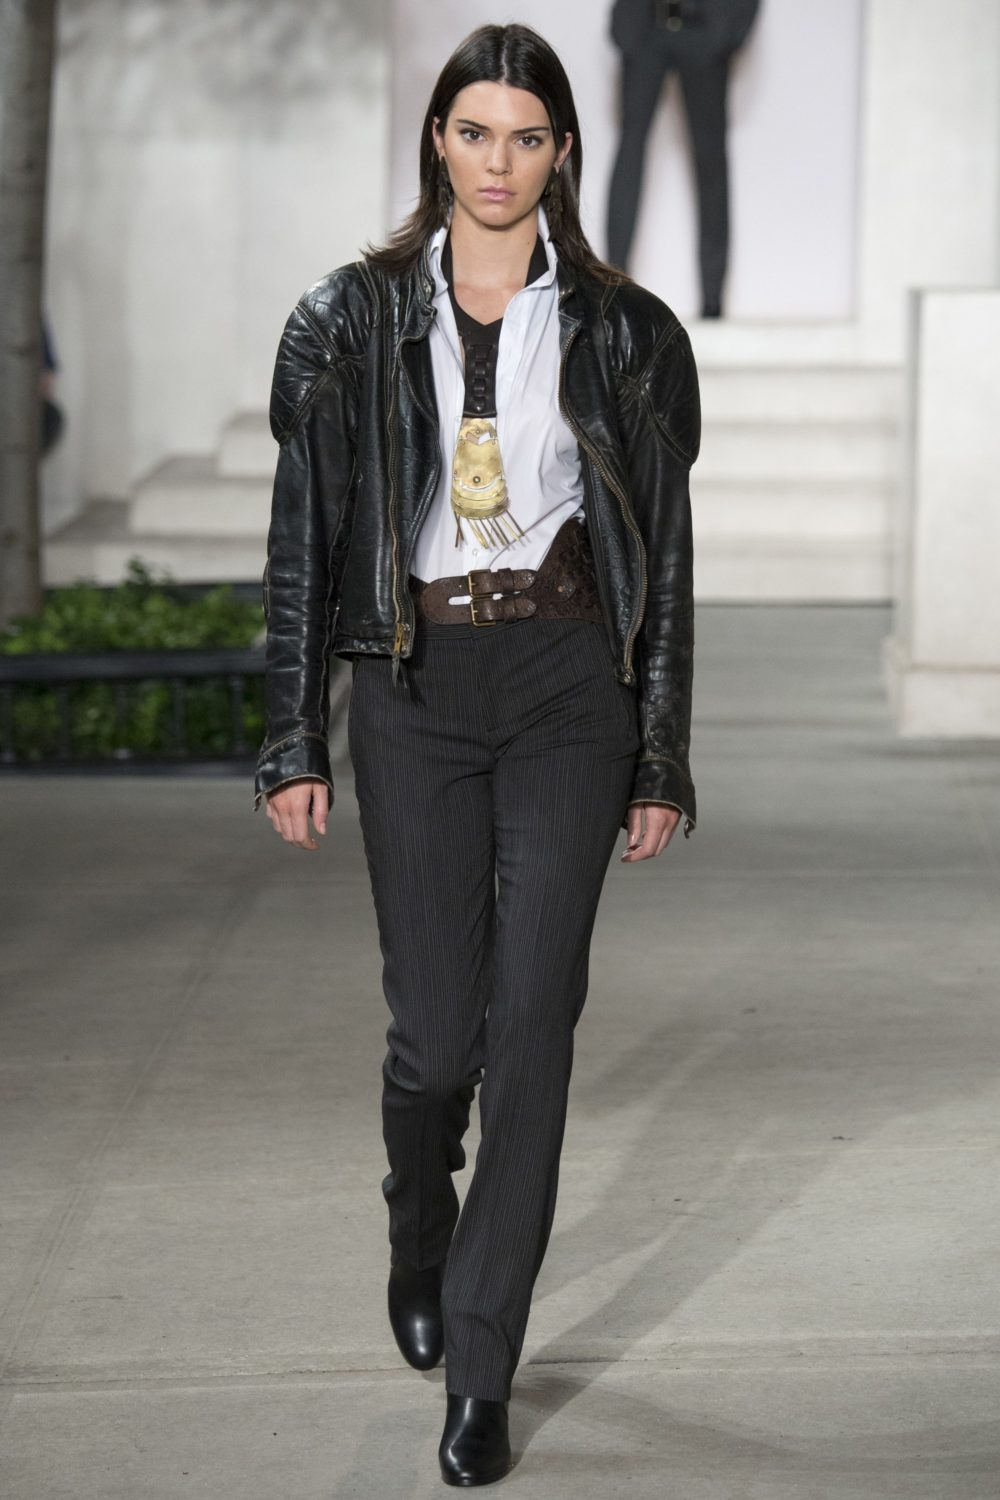 Kendall Jenner walks for Ralph Lauren's Fall 2016 show. Image courtesy of Vogue Runway.